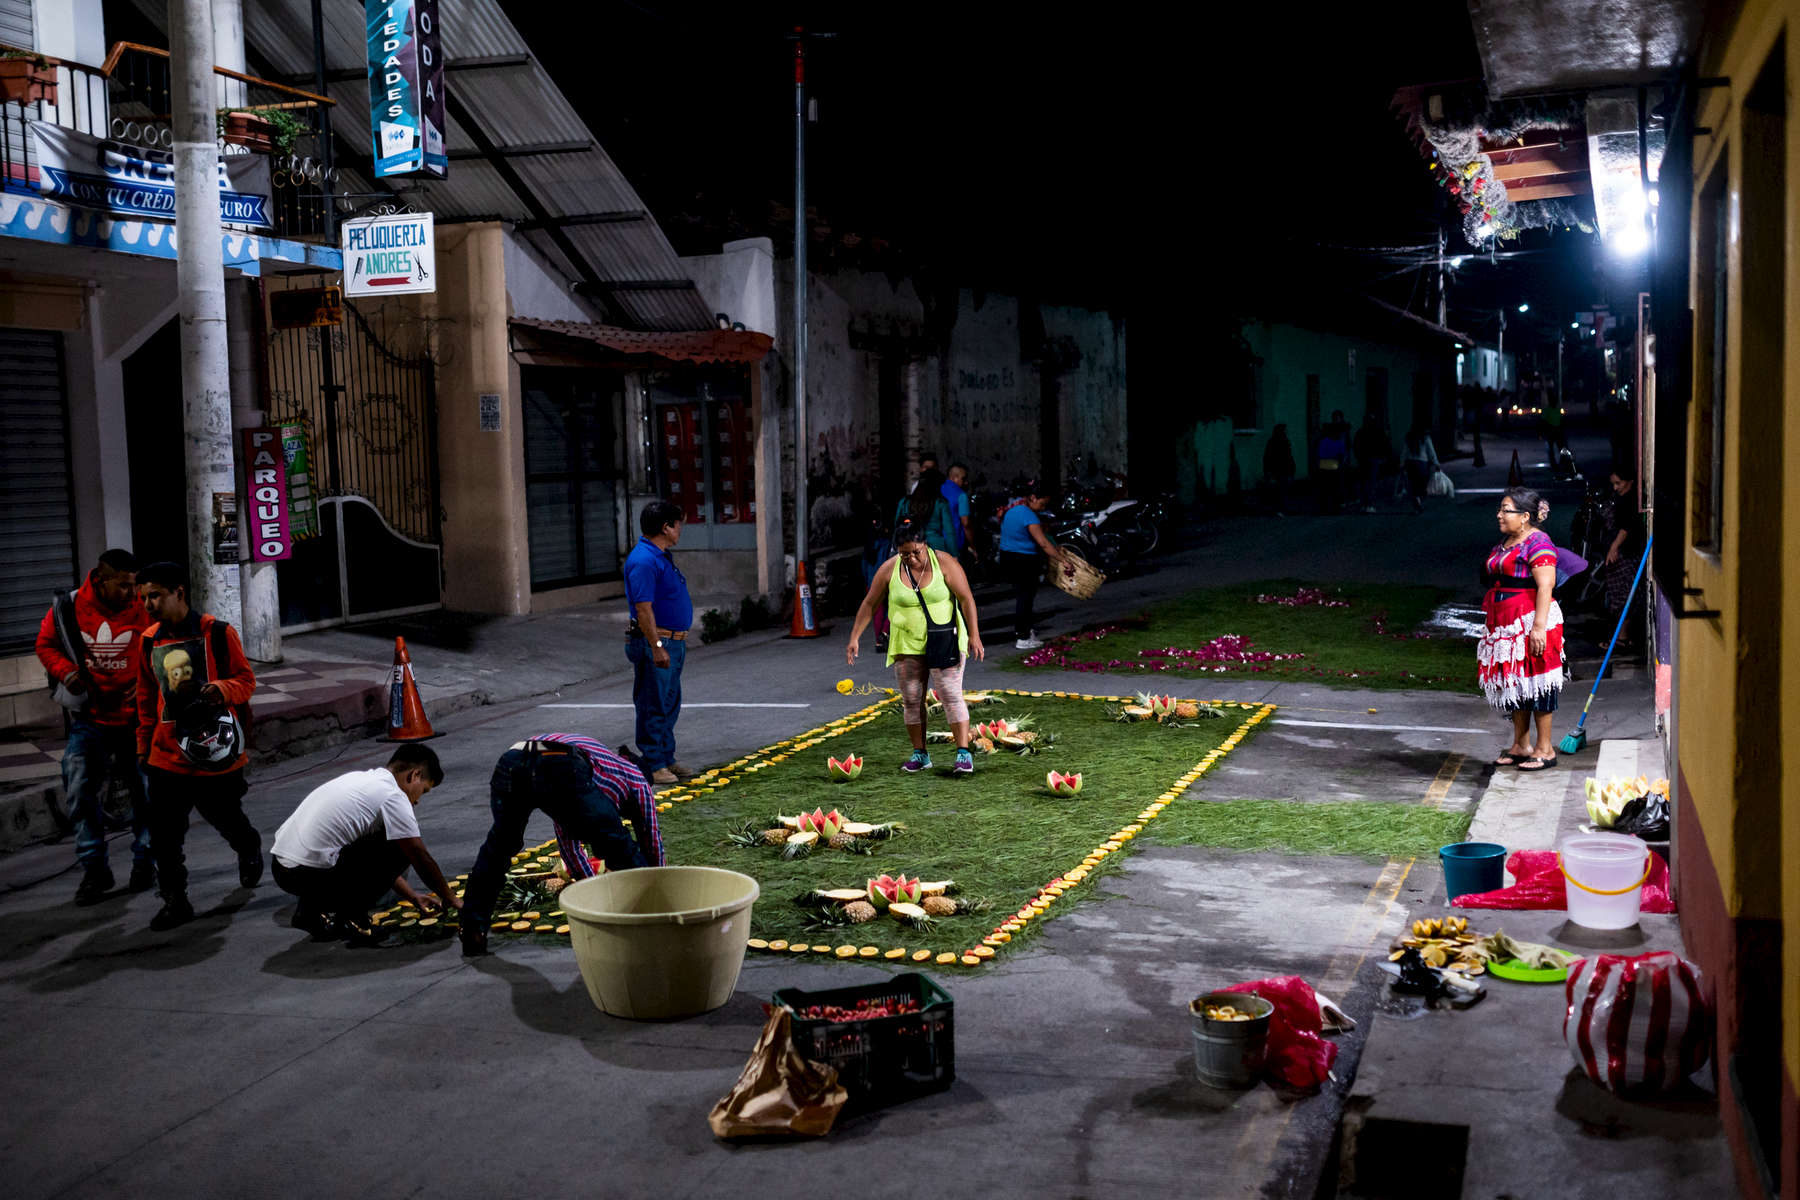 Residents of Panajachel make a carpet out of pine needles and fruit for the procession to pass over during it's route back to the church on Maundy Thursday.